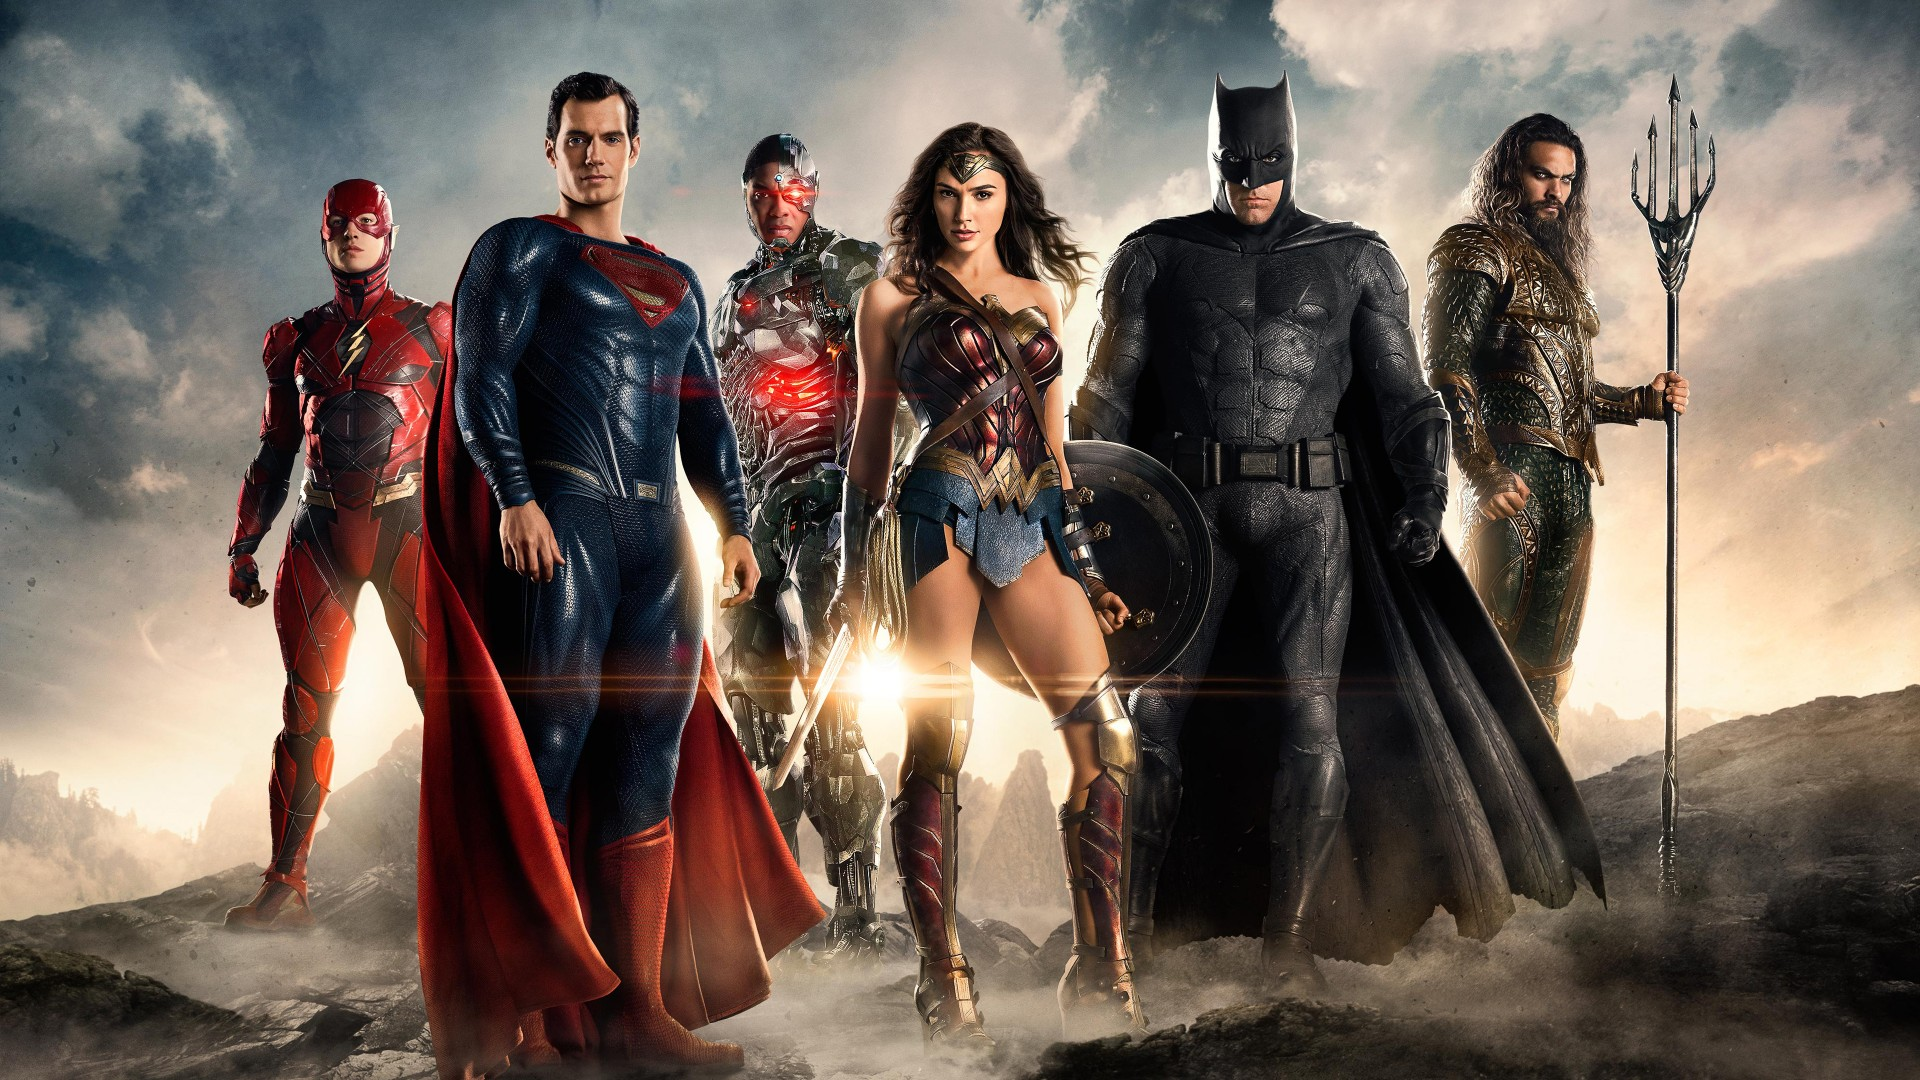 Justice League 2017 Movie Wallpapers | HD Wallpapers